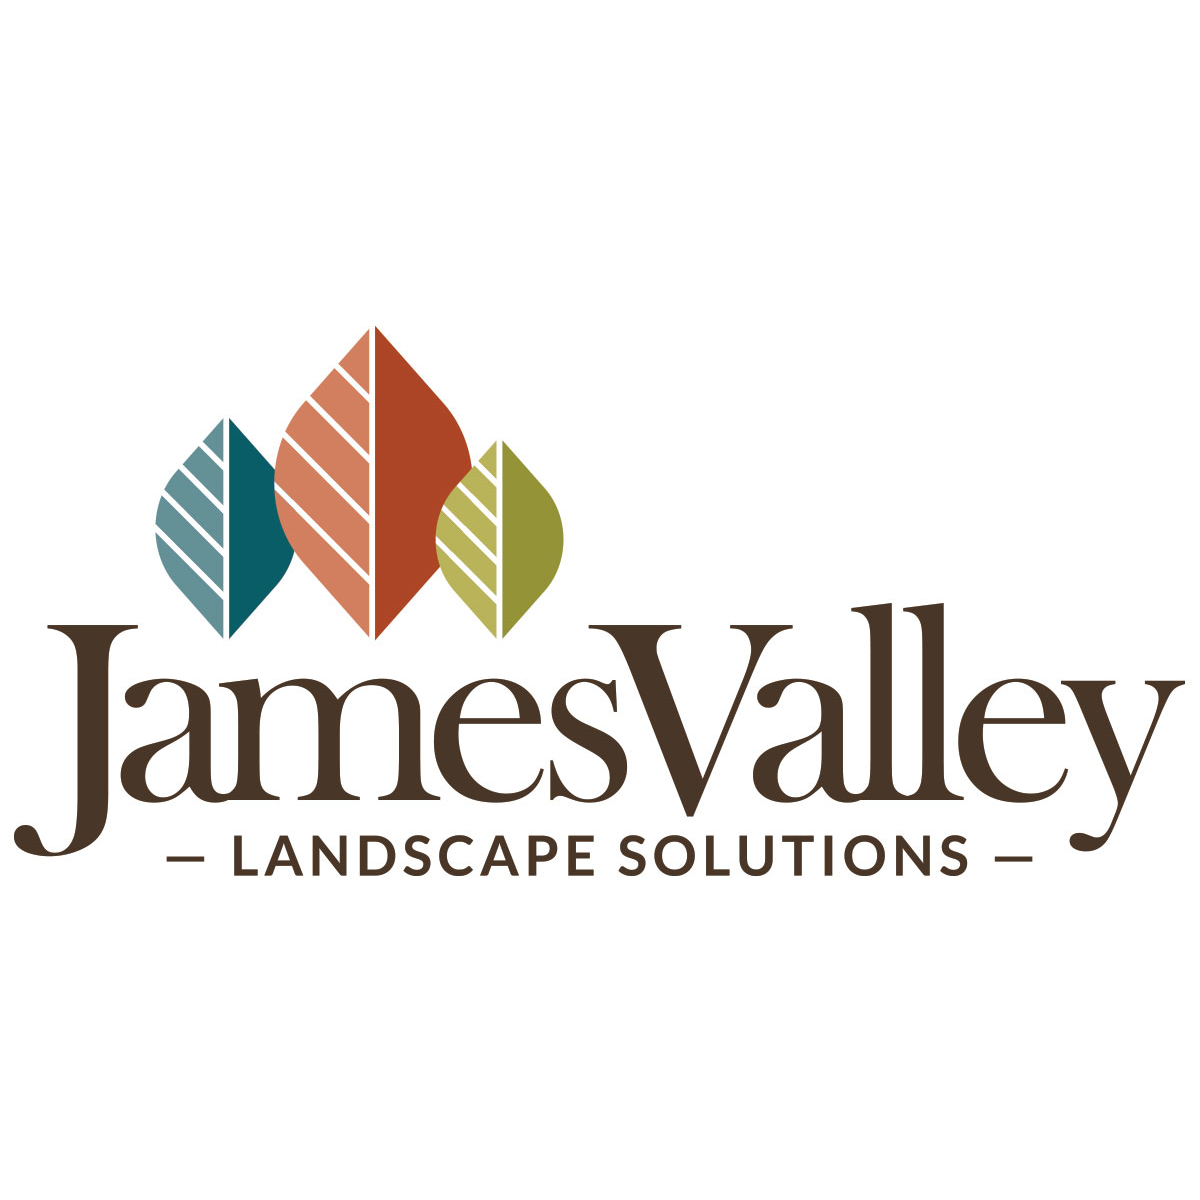 Landscaper in SD Mitchell 57301 James Valley Landscape Solutions 600 W Spruce St  (605)996-8444